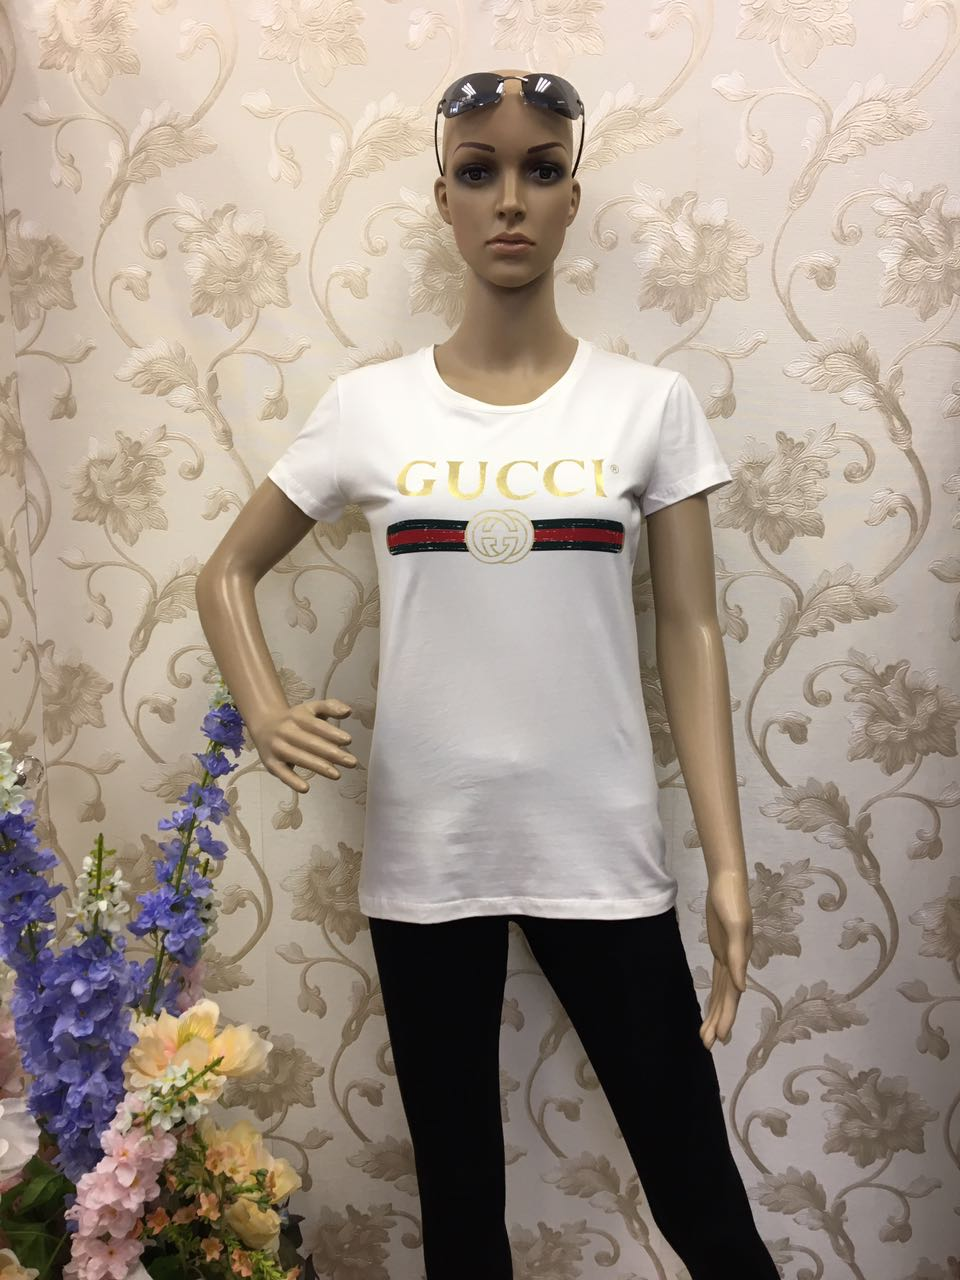 gucci-short-sleeves-white-top-with-gold-print-logo